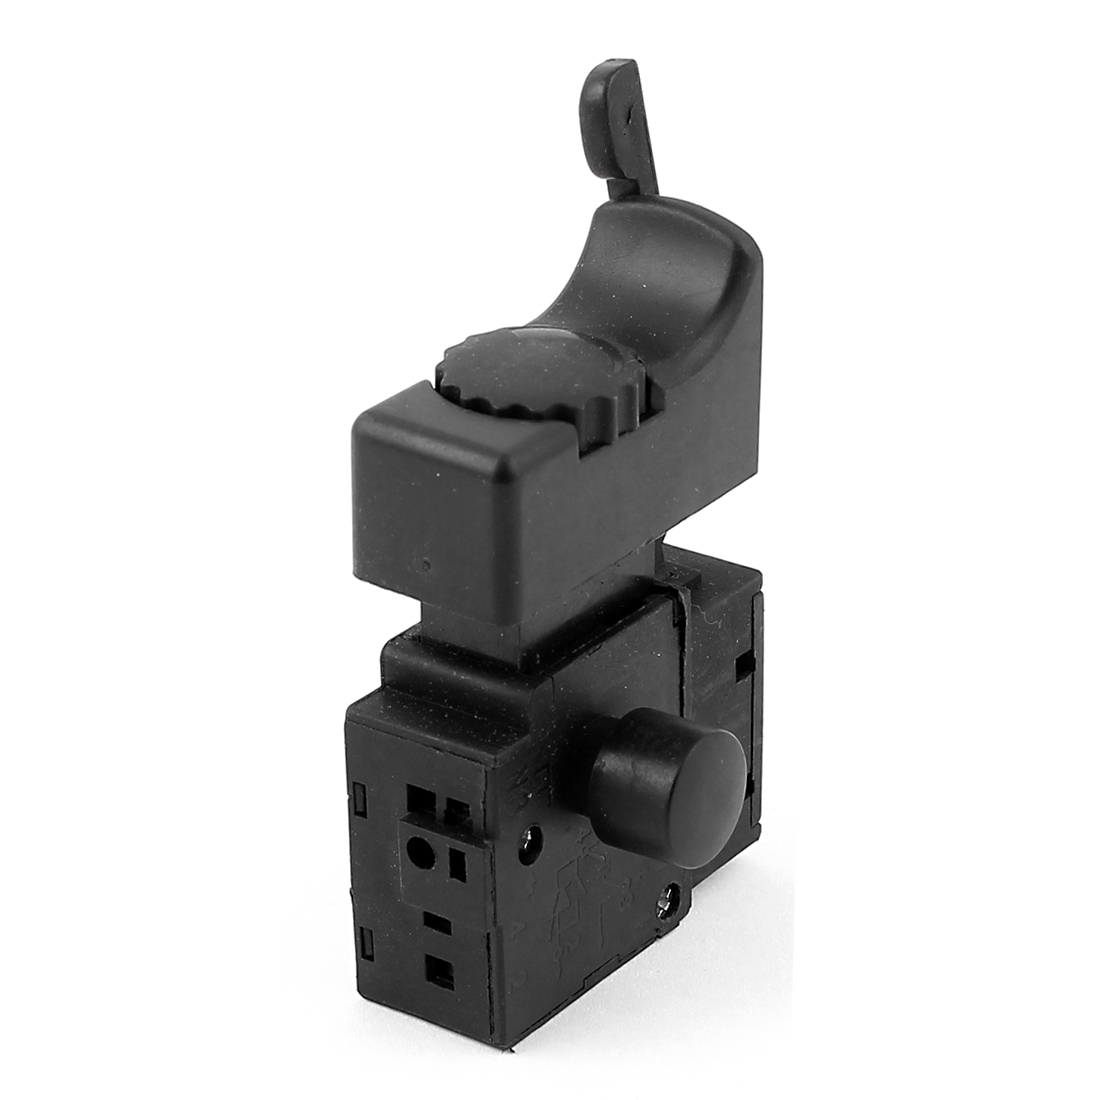 FA2-6/1BEK SPDT Lock on Power Tool Trigger Button Switch Black AC250V 6A